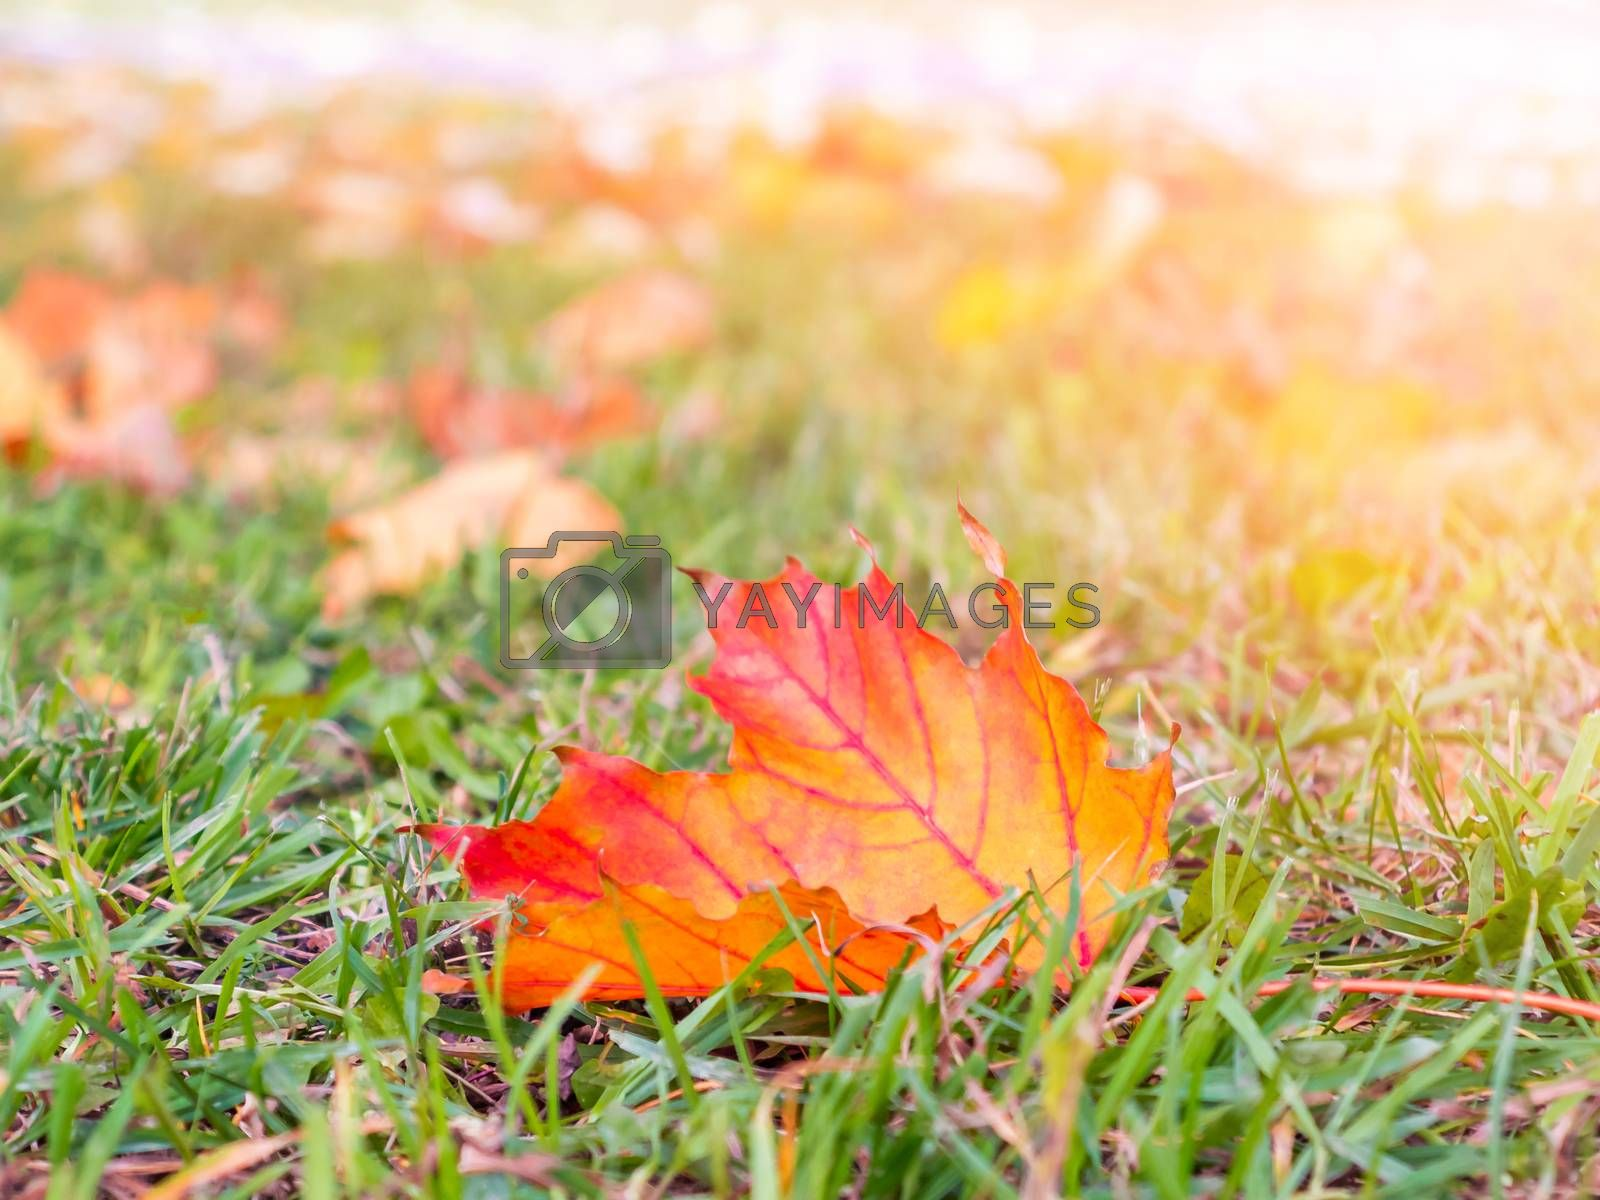 Orange autumn leaf on green grass close up. Autumn background by galsand